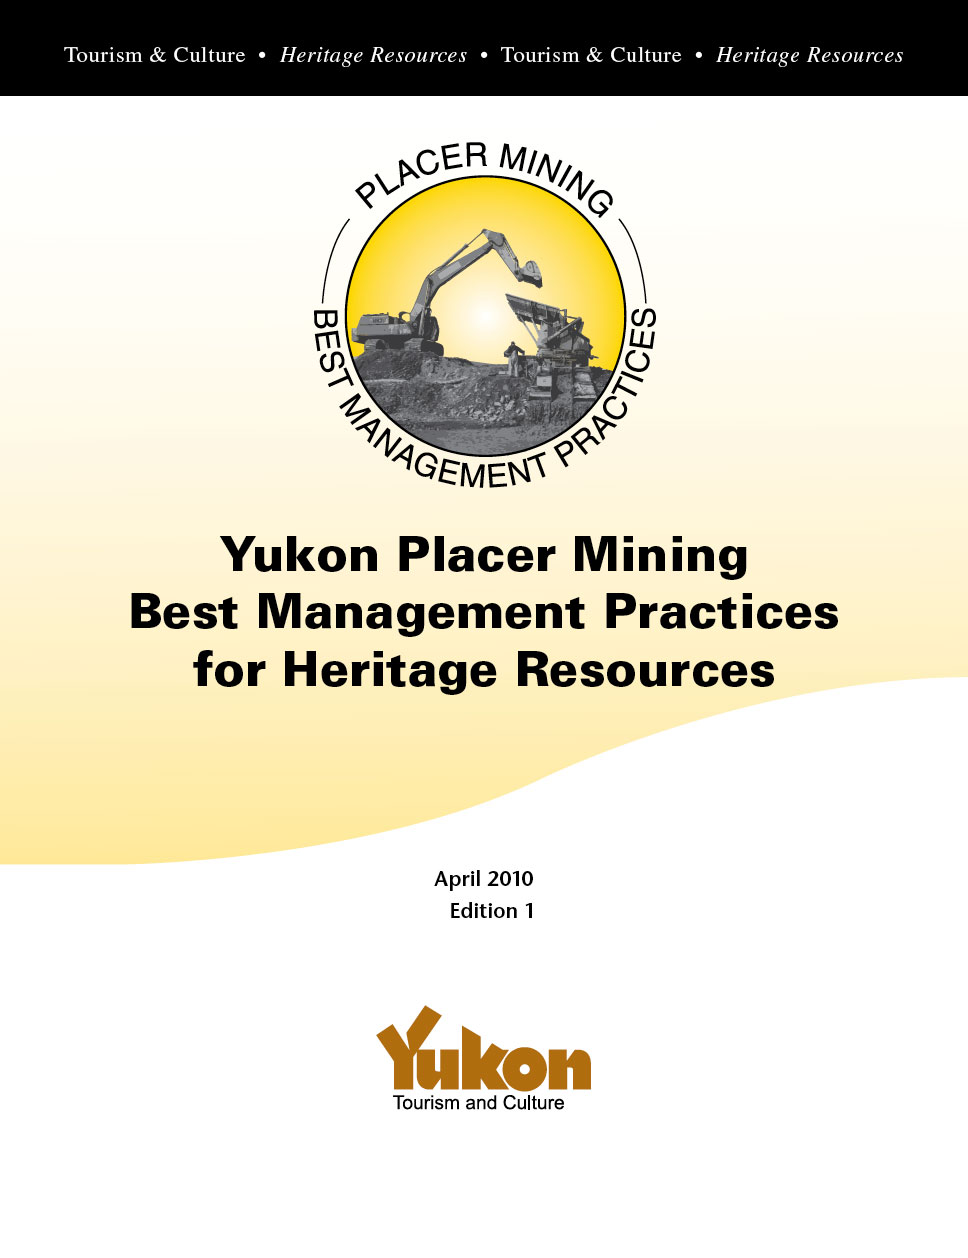 Yukon Placer Mining Best Management Practices for Heritage Resources